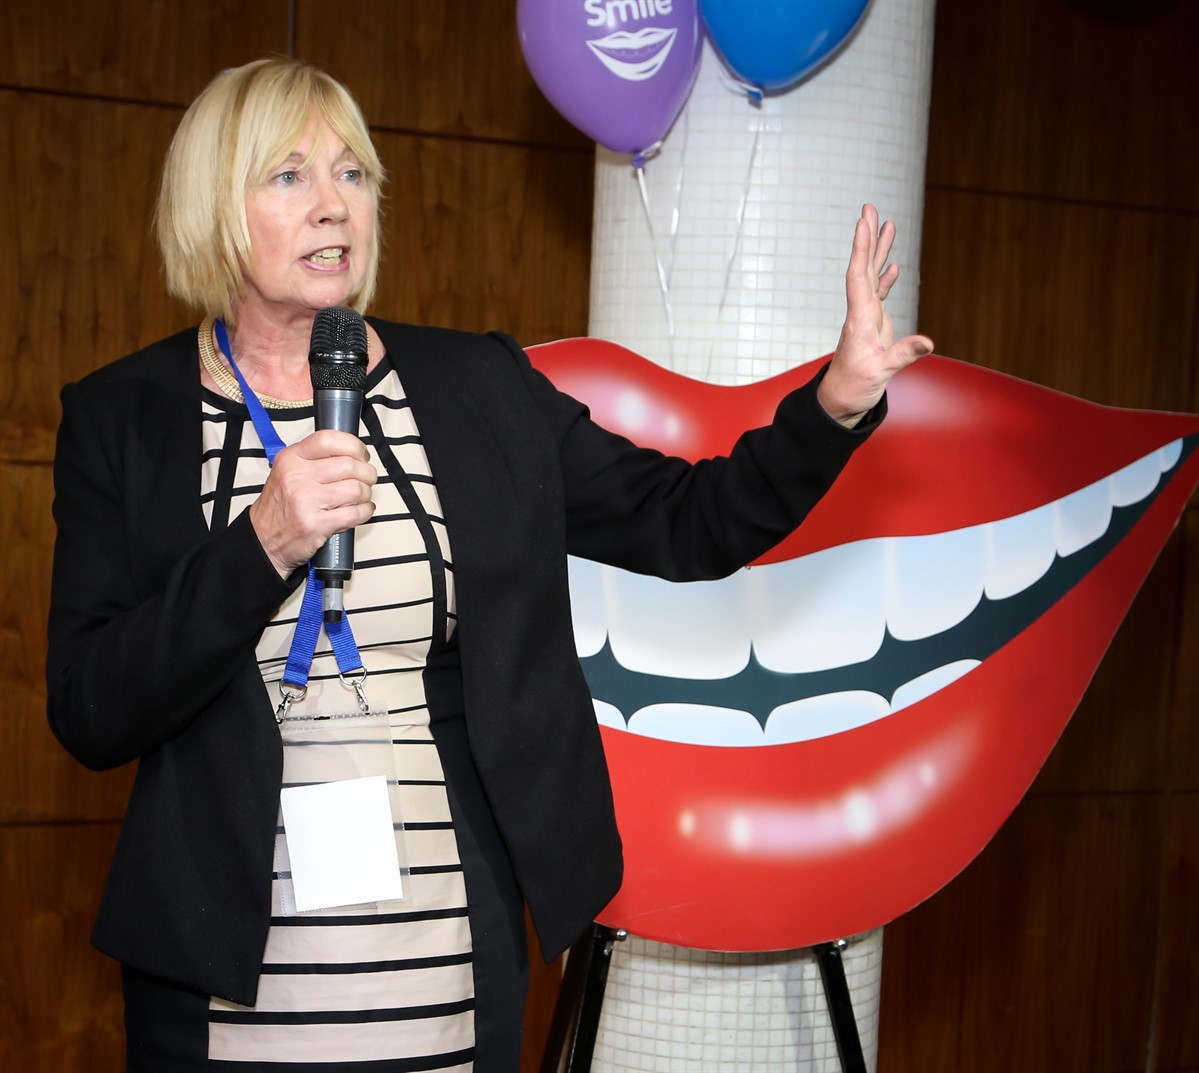 JANET GOODWIN MEMORIAL FUND LAUNCHED TO SUPPORT THE FUTURE OF DENTAL NURSING